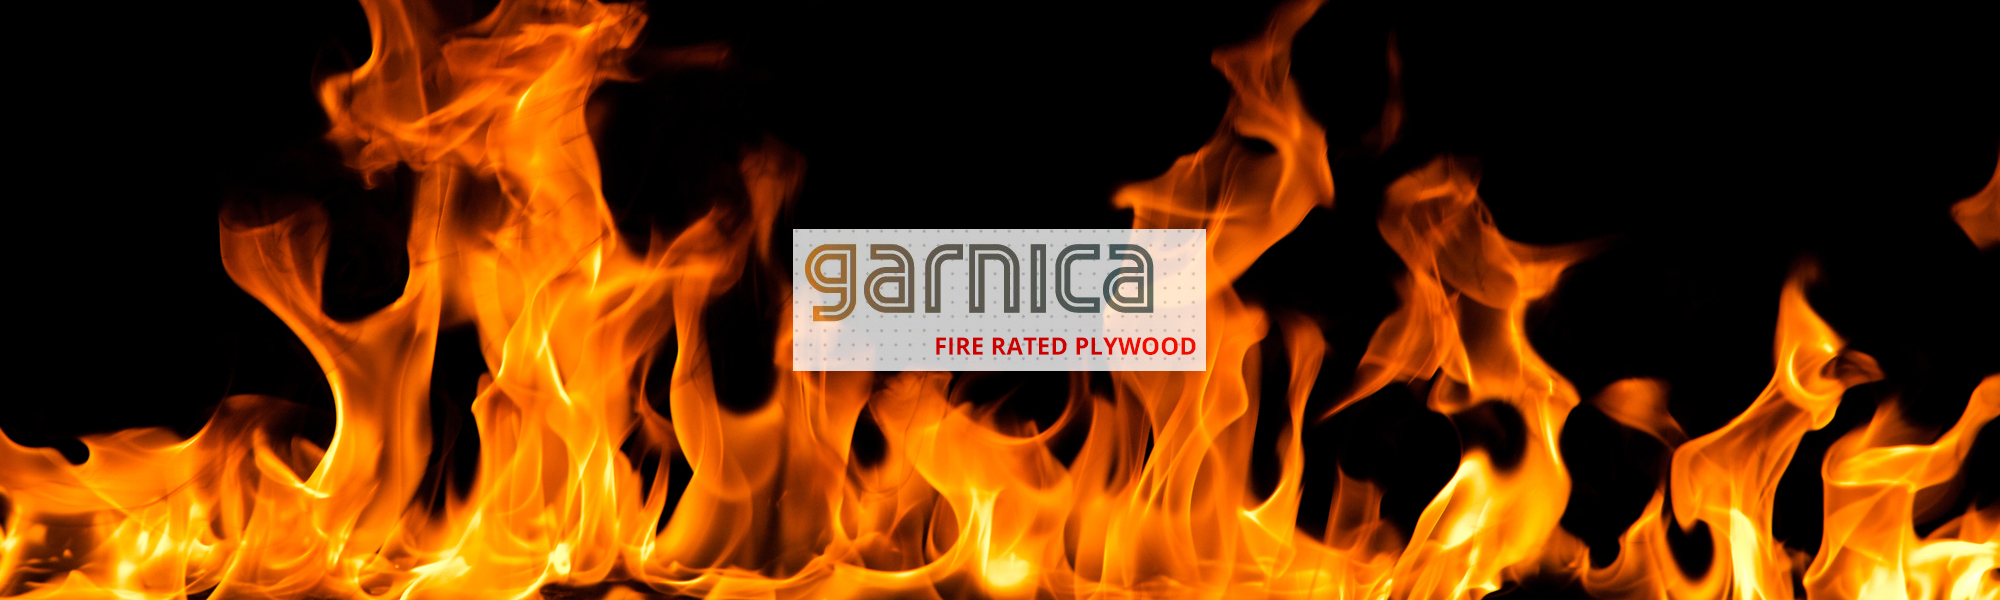 Chesapeake Plywood Garnica Fire Rated Plywood